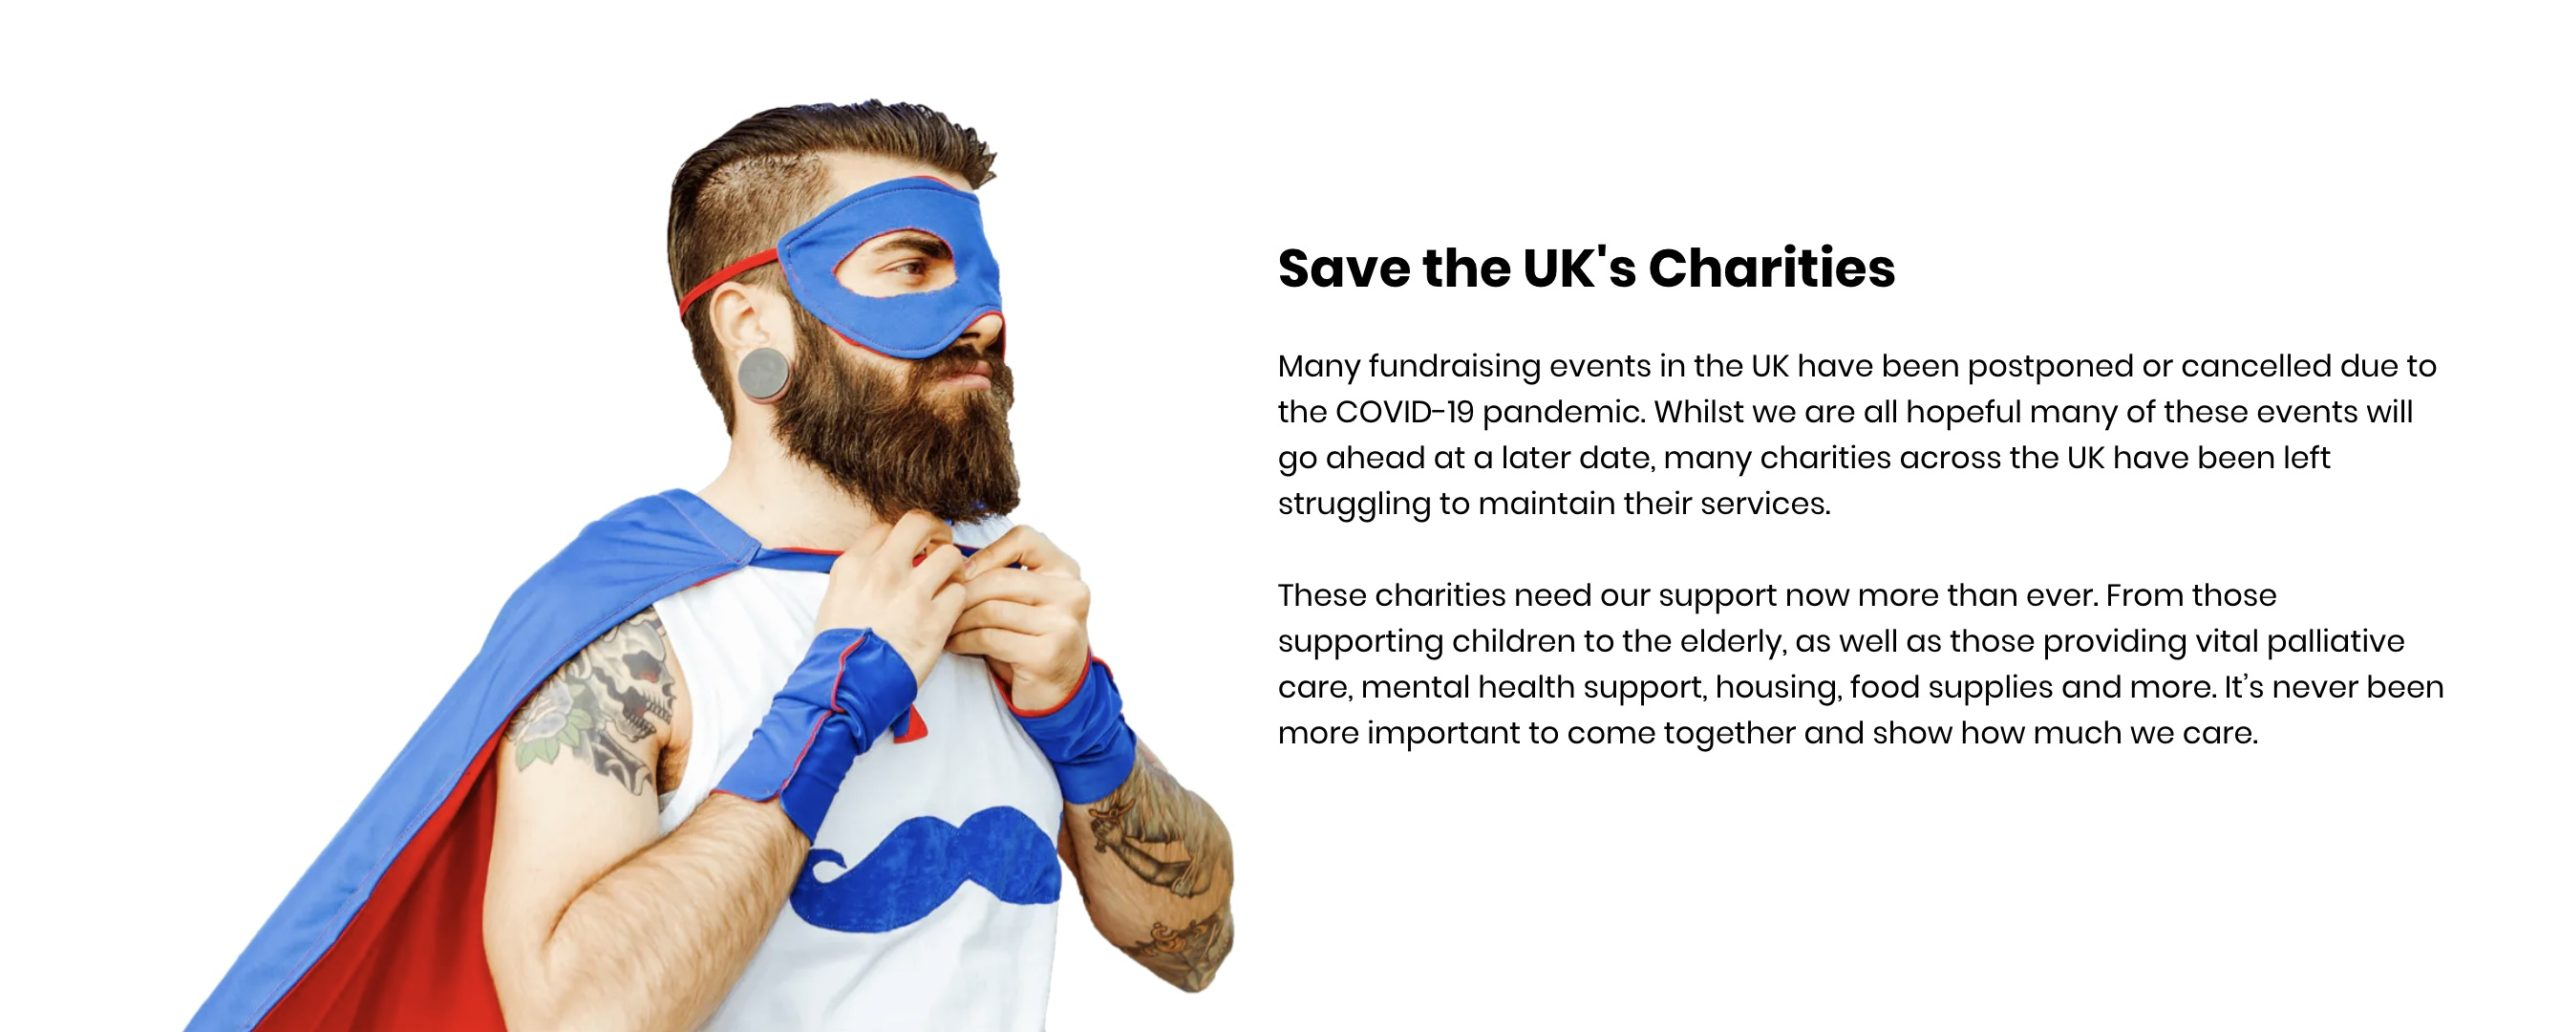 26 Examples Of 2 6 Challenge Fundraising Events Uk Fundraising